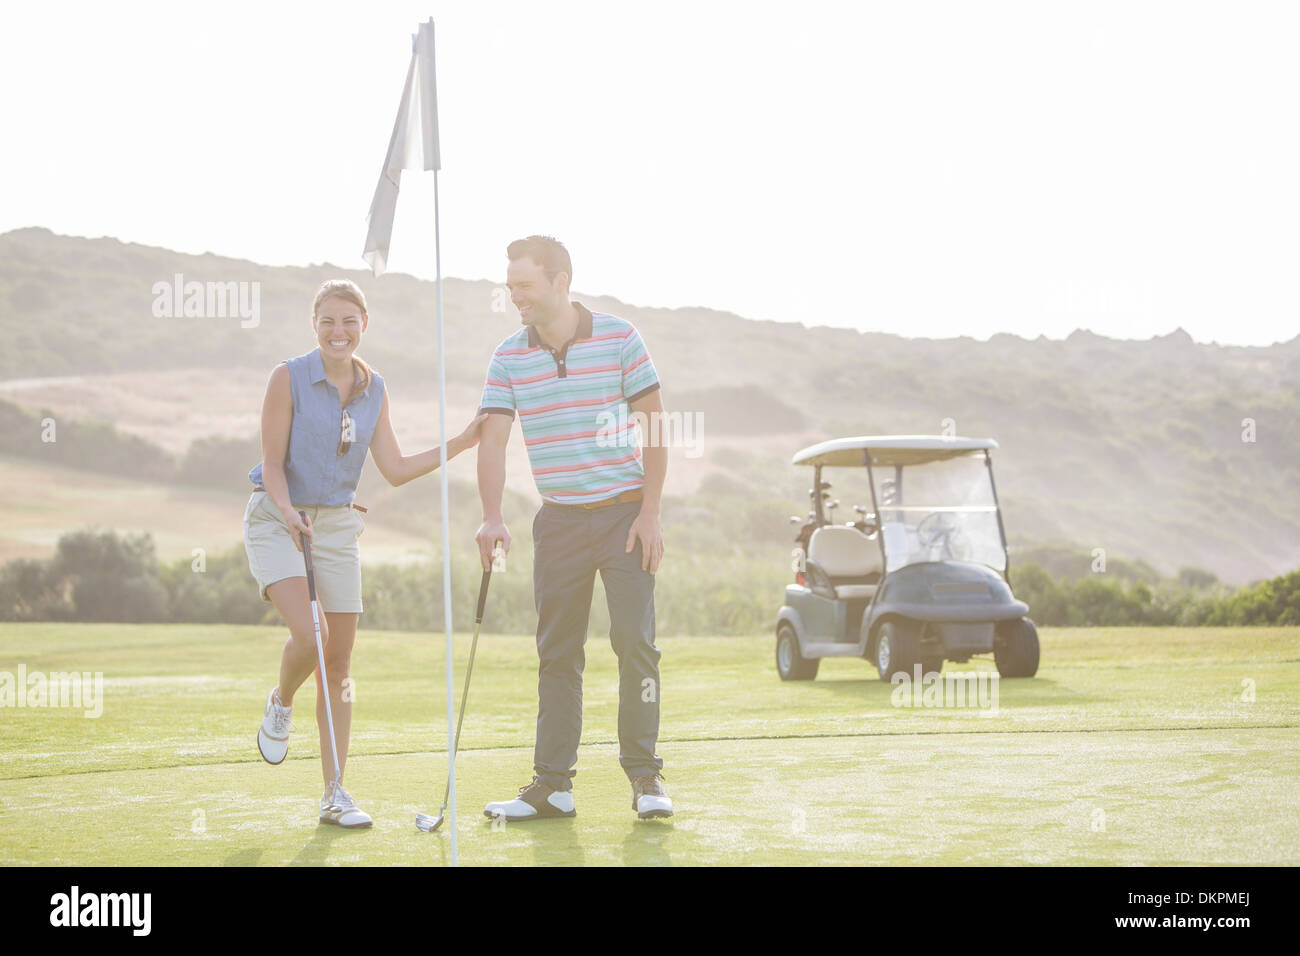 Couple playing golf on course - Stock Image